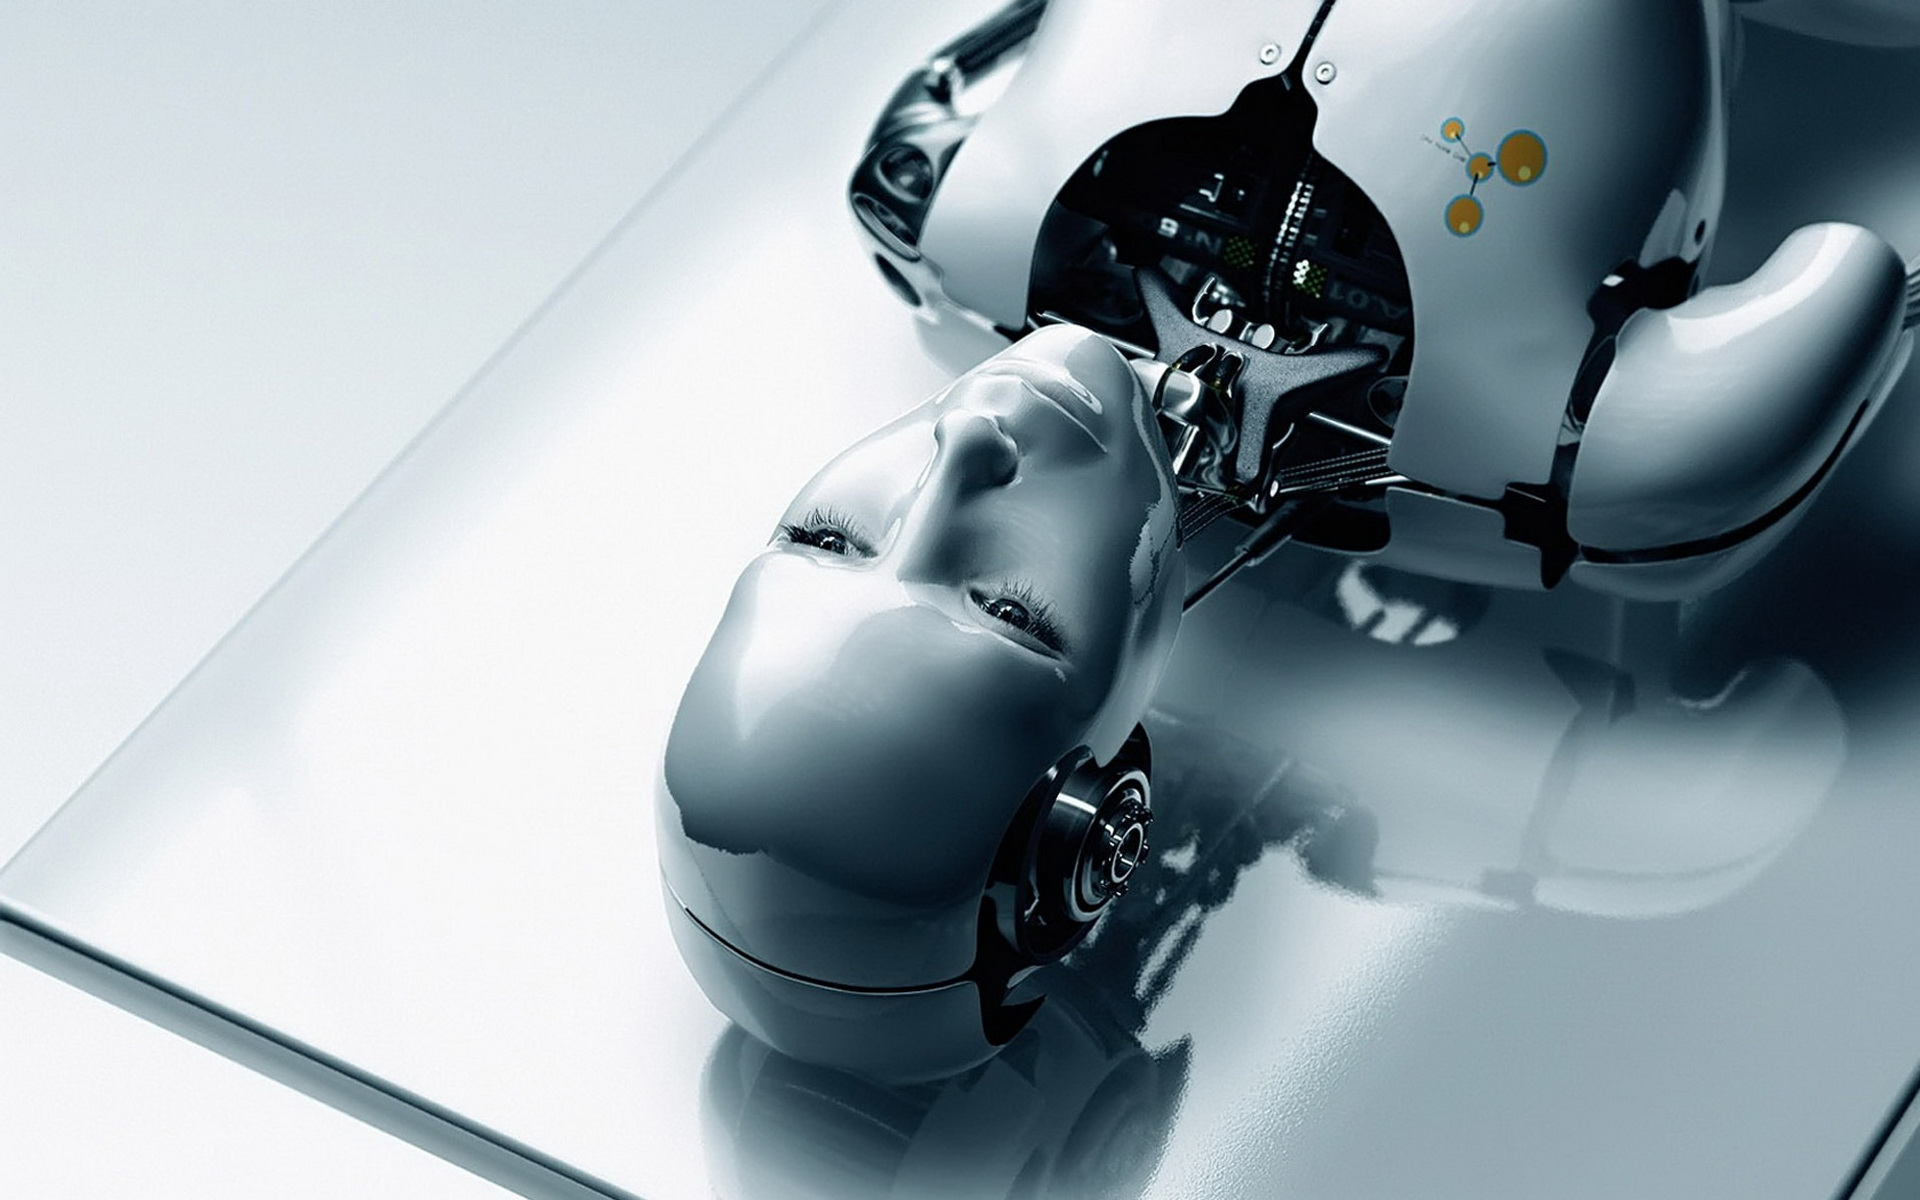 Android Robot HD Wallpapers - WallpaperSafari